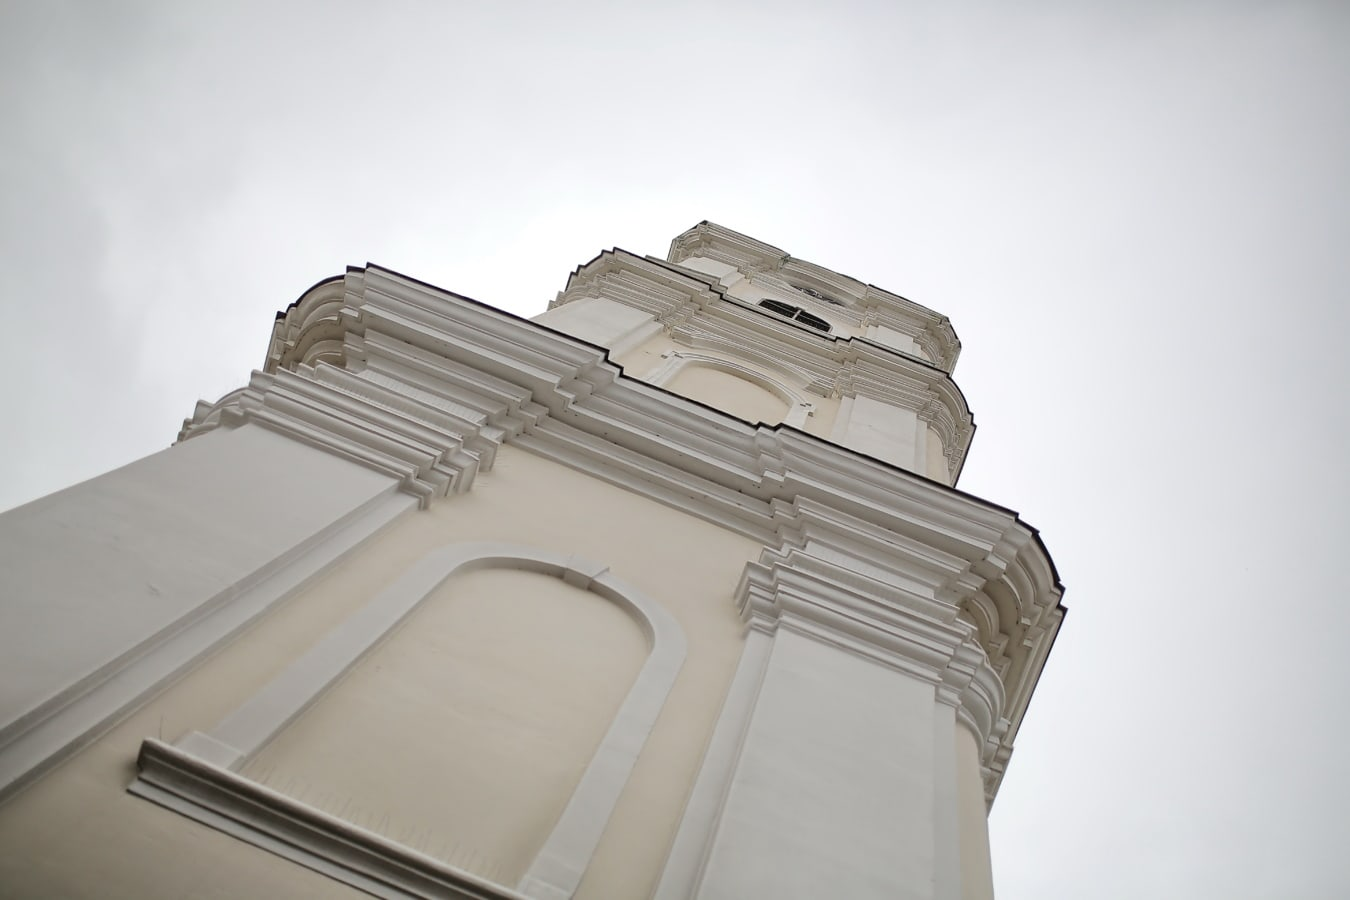 russian, church tower, architectural style, orthodox, tall, building, architecture, art, church, city